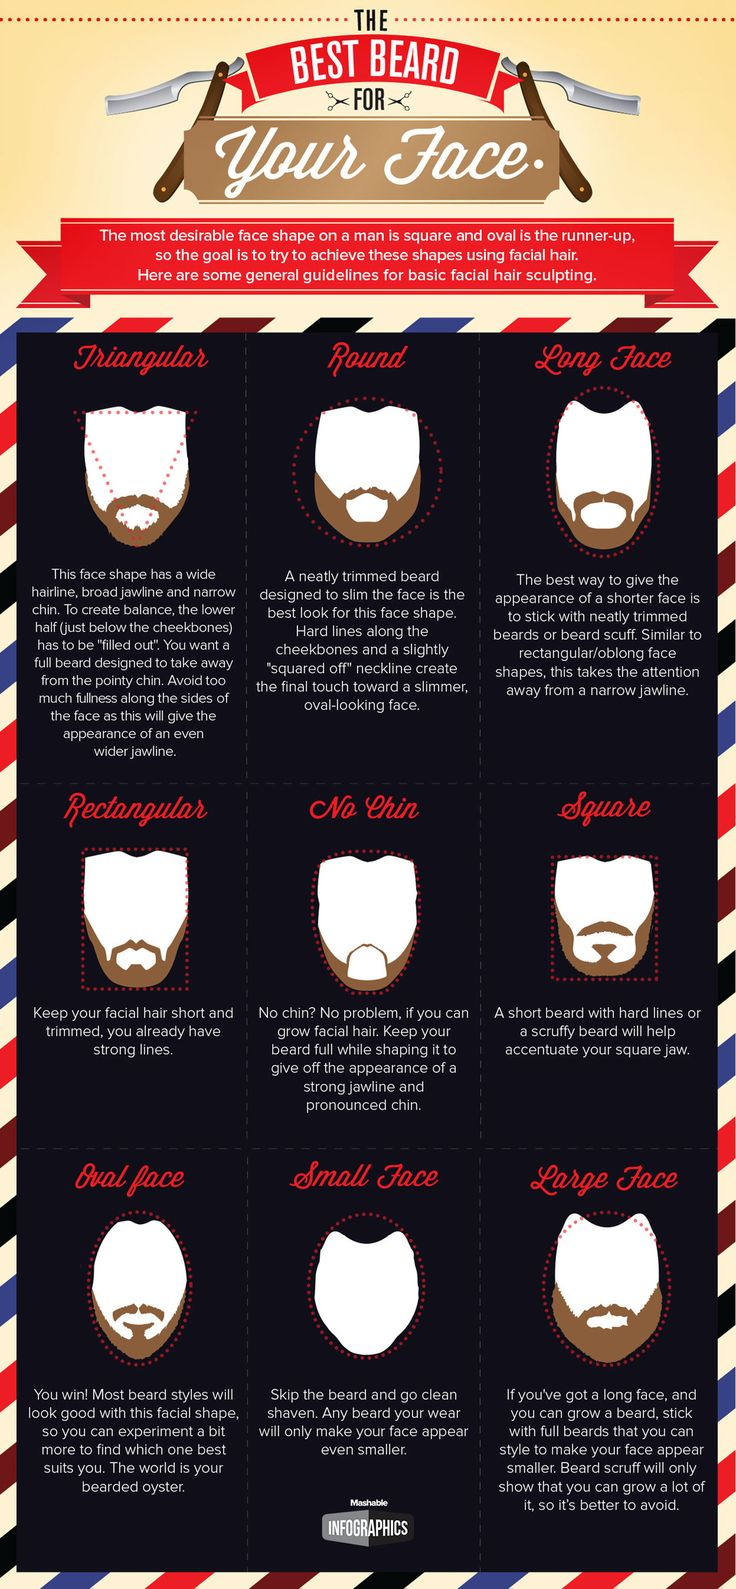 Faces come in all shapes and sizes. Beards should too.